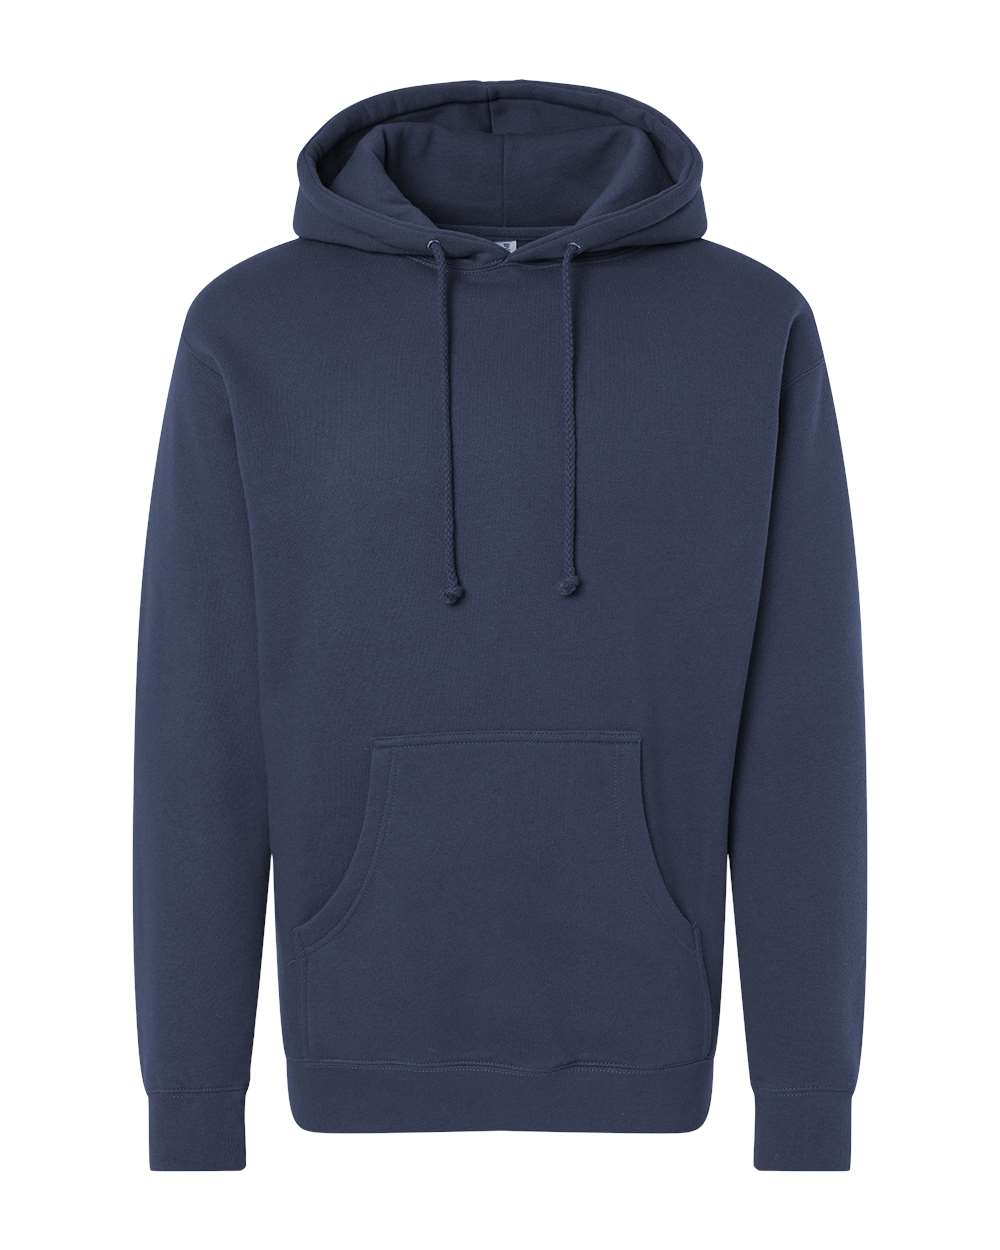 Independent-Trading-Co-Mens-Hooded-Pullover-Sweatshirt-IND4000-up-to-3XL miniature 33